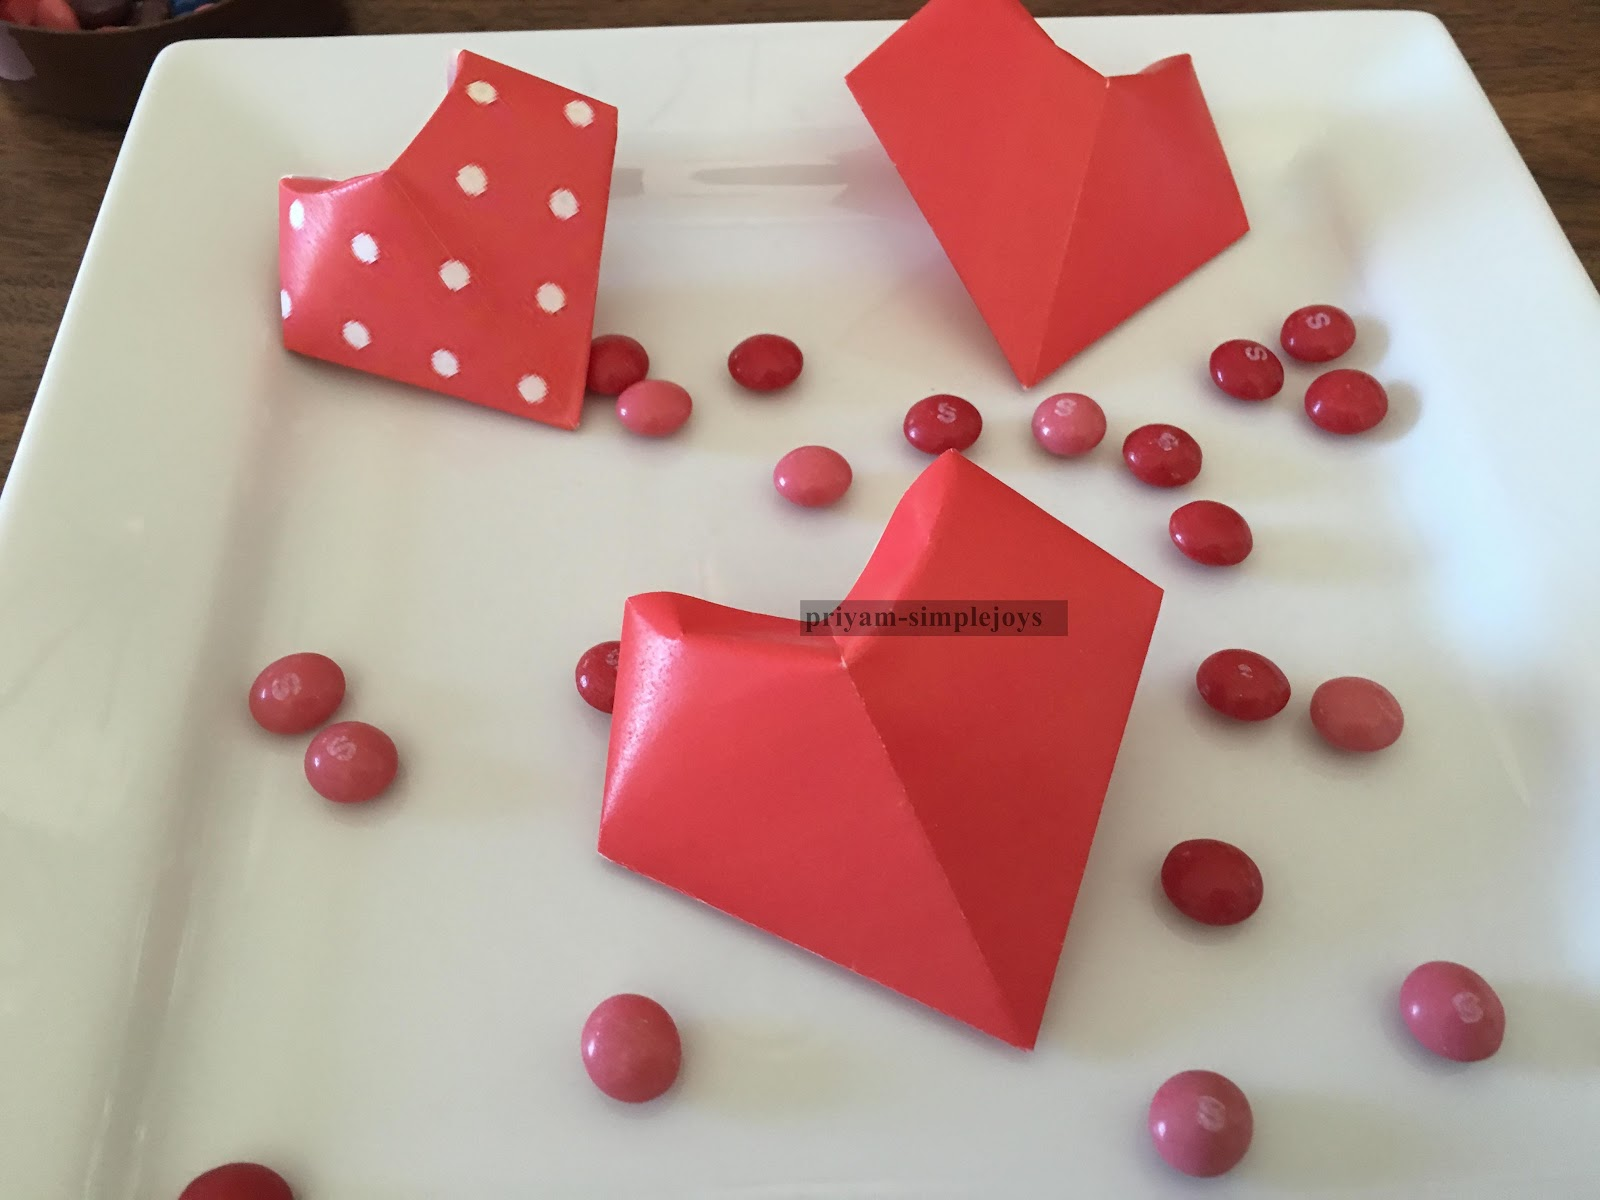 SimpleJoys: 3D Origami Paper Heart - photo#41